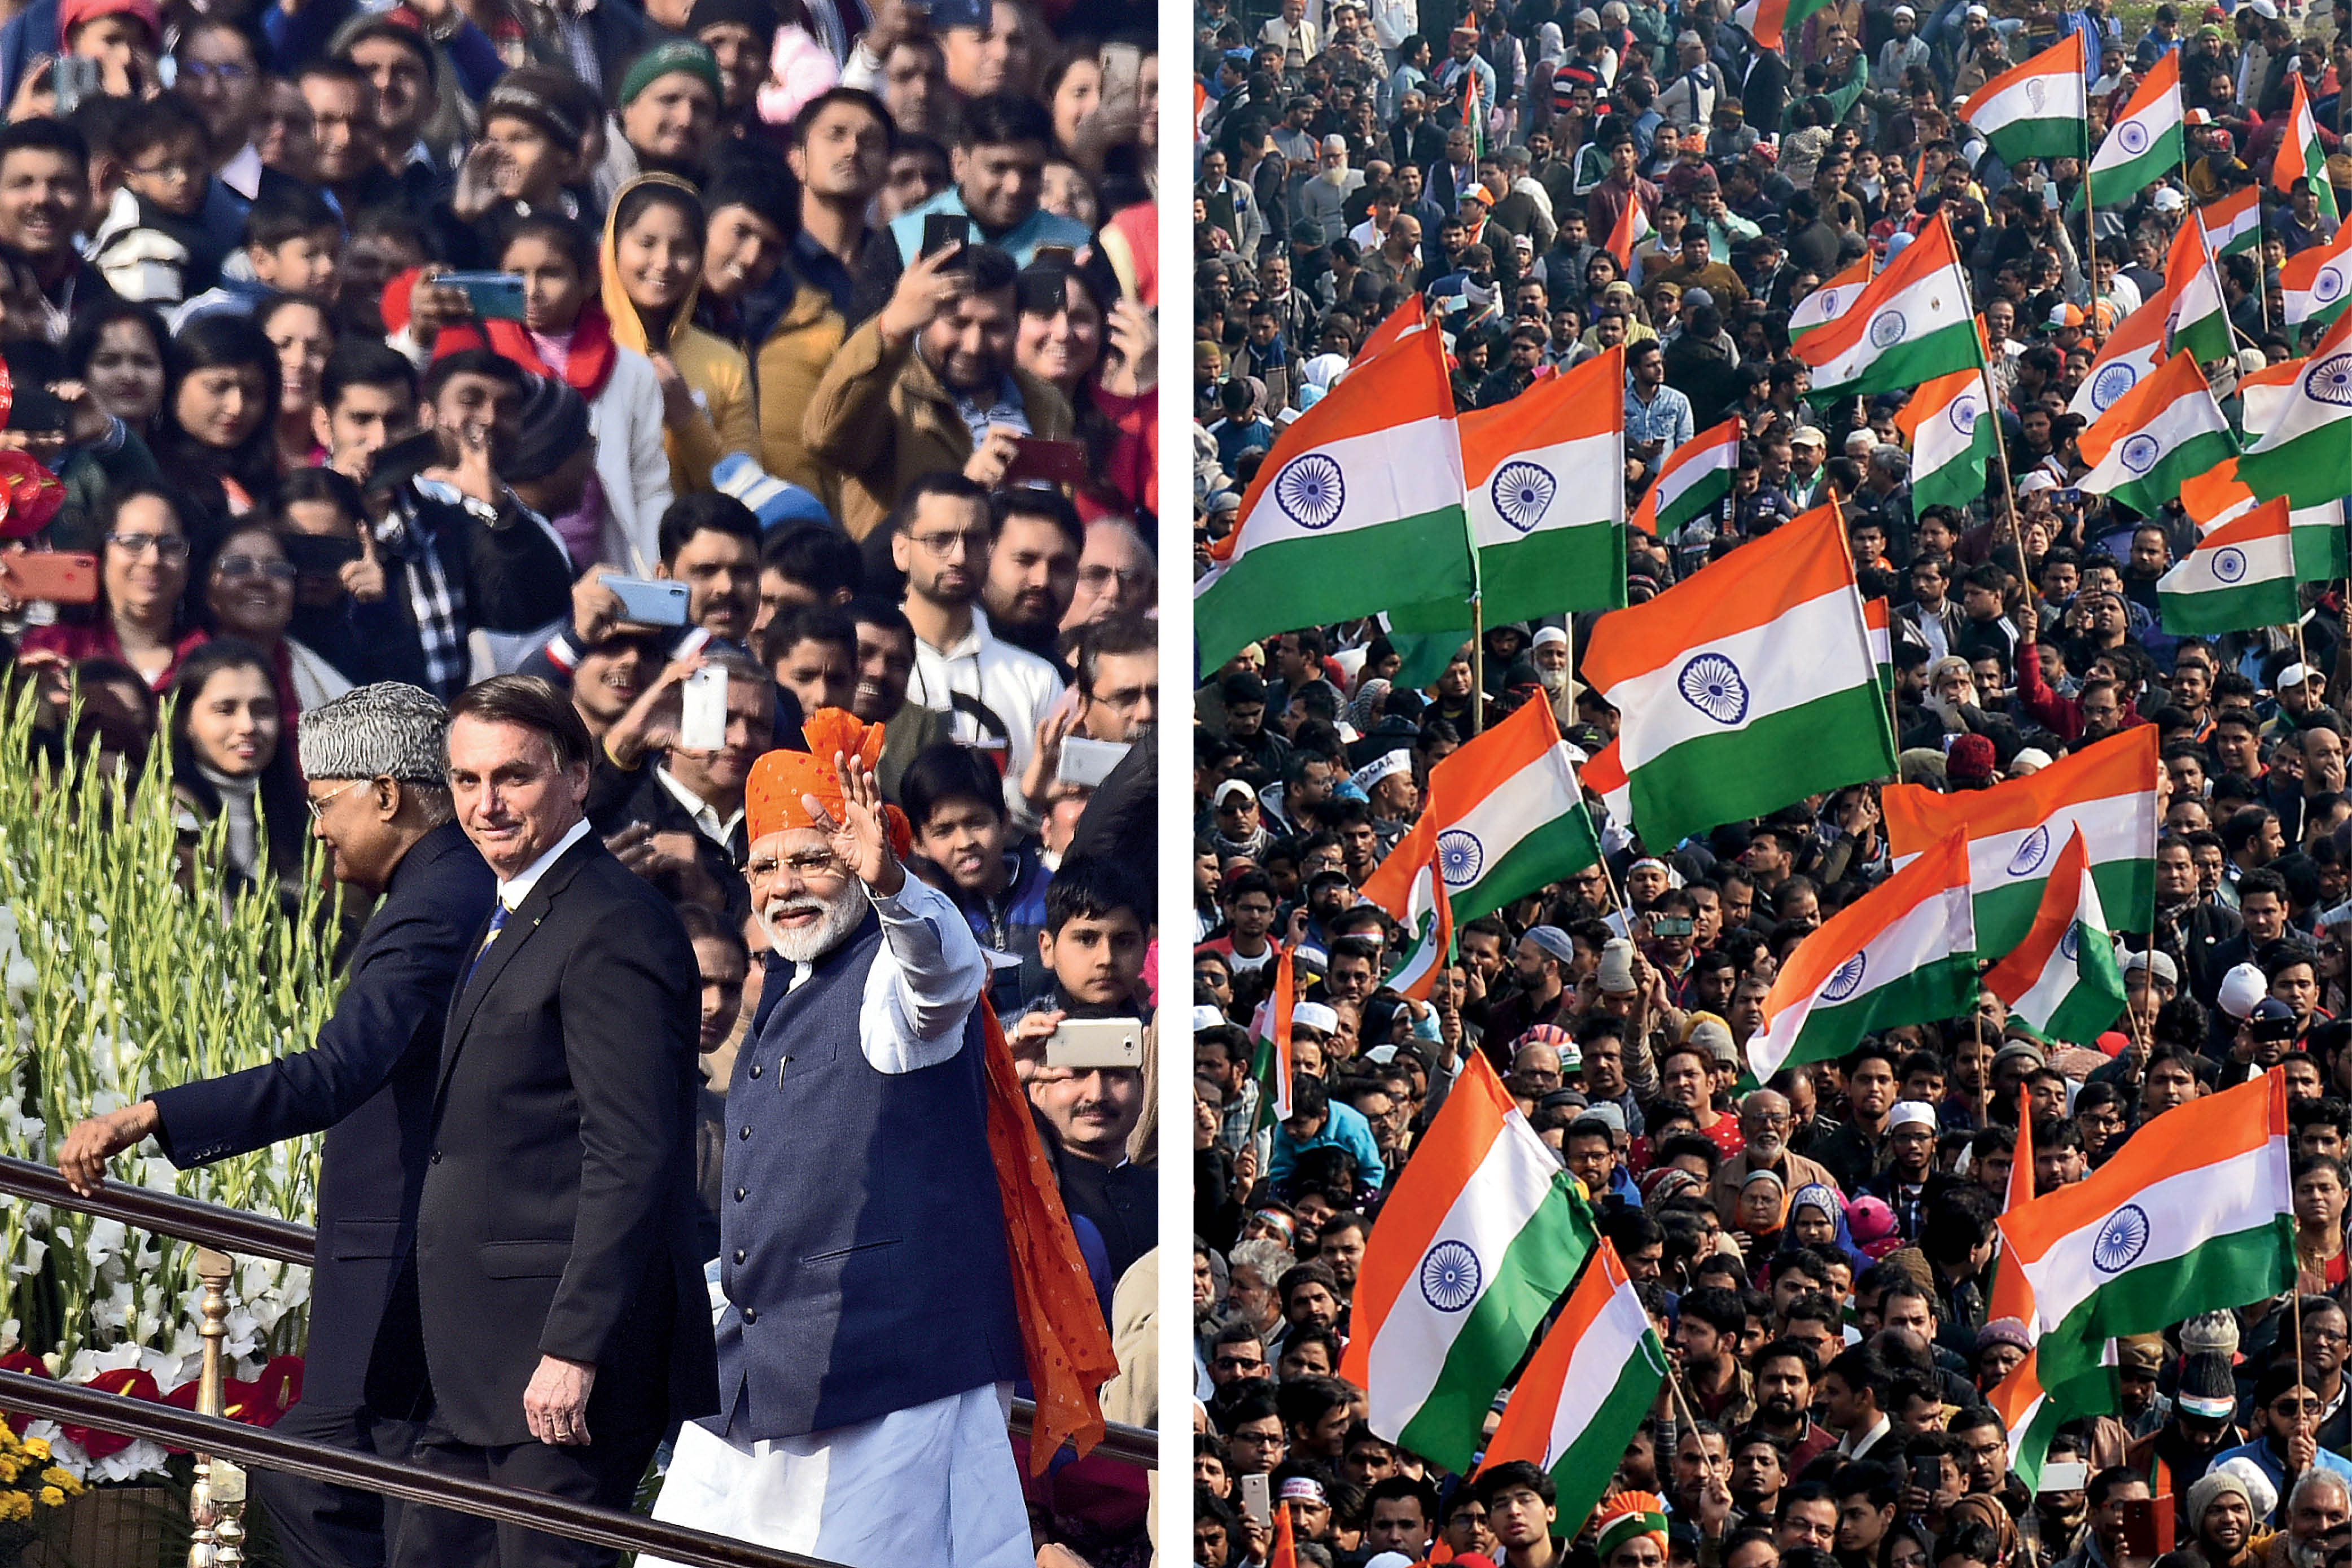 Left: Indian Prime Minister Narendra Modi, with Brazilian President Jair Bolsonaro and Indian President Ram Nath Kovind during the Republic Day parade at Rajpath in New Delhi on Jan. 26. Right: Protesters celebrate the same day at Shaheen Bagh in New Delhi.